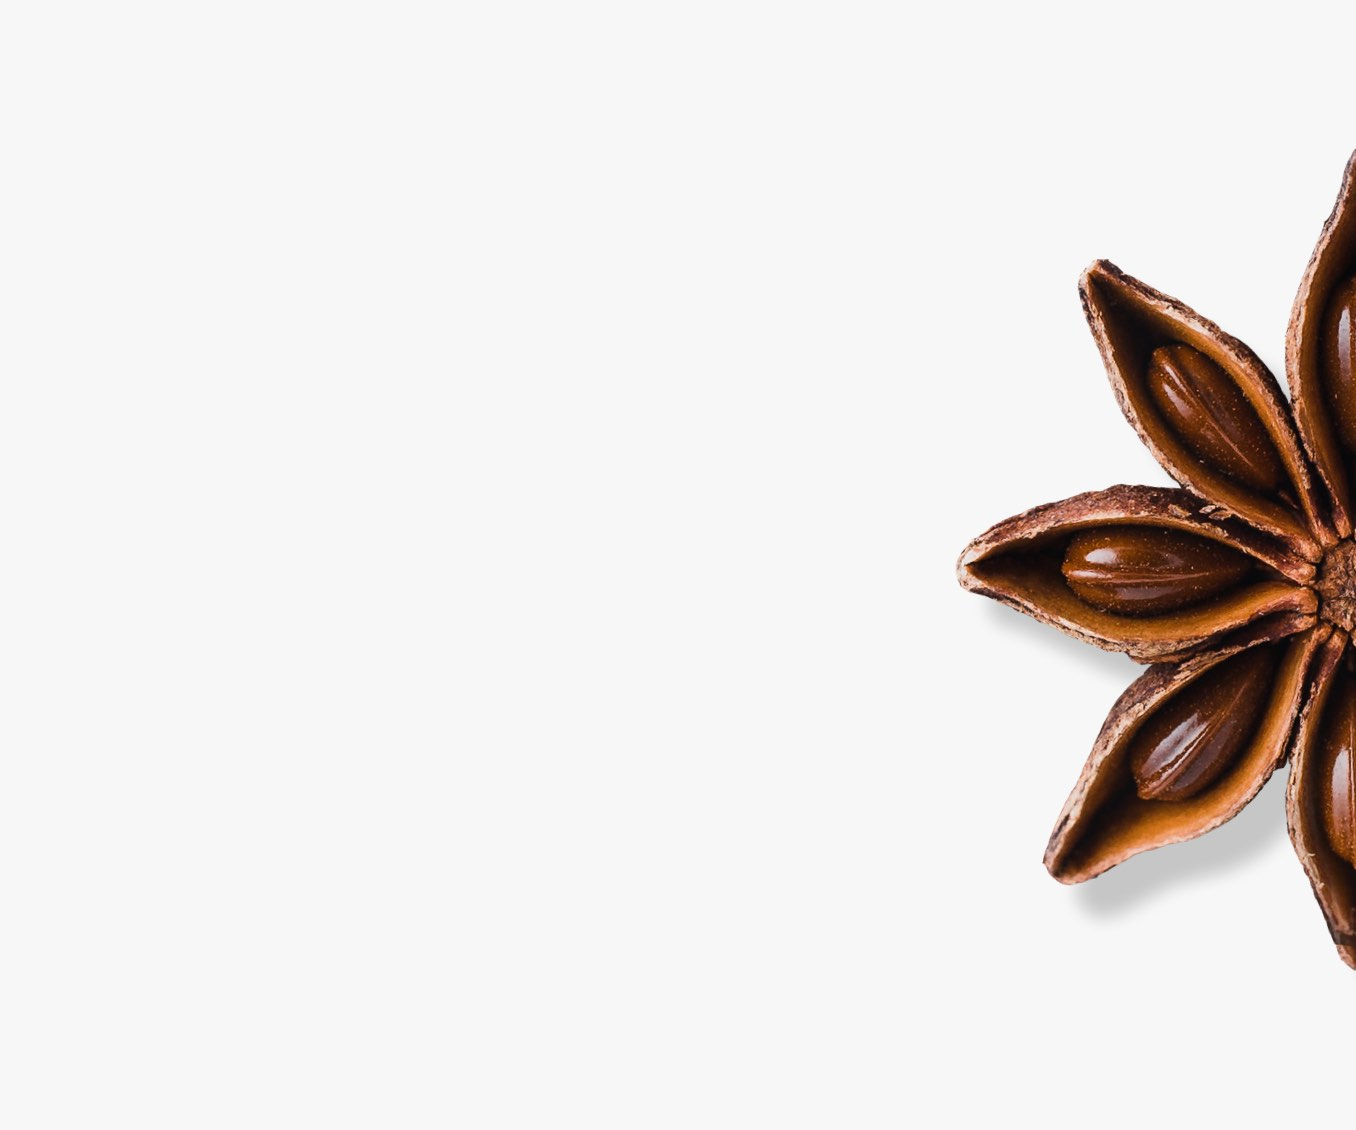 Single star anise spice.